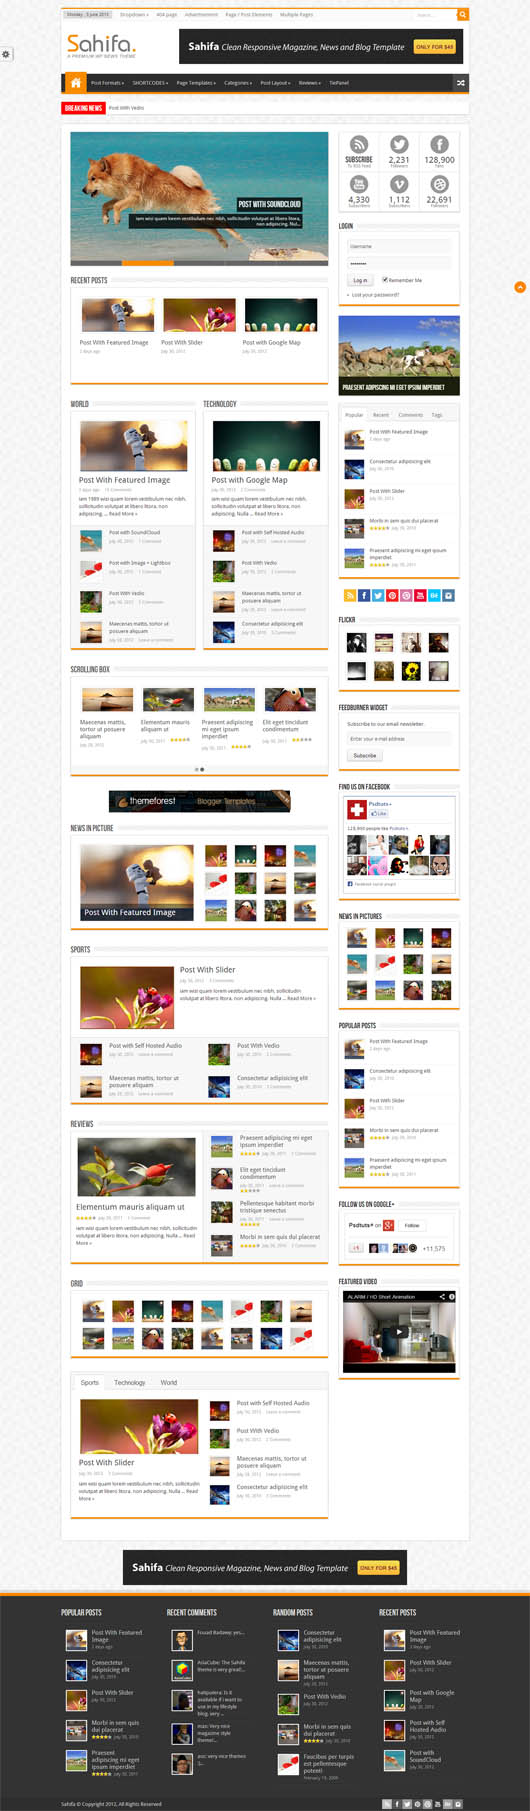 Sahifa – Responsive WordPress News,Magazine,Blog Theme